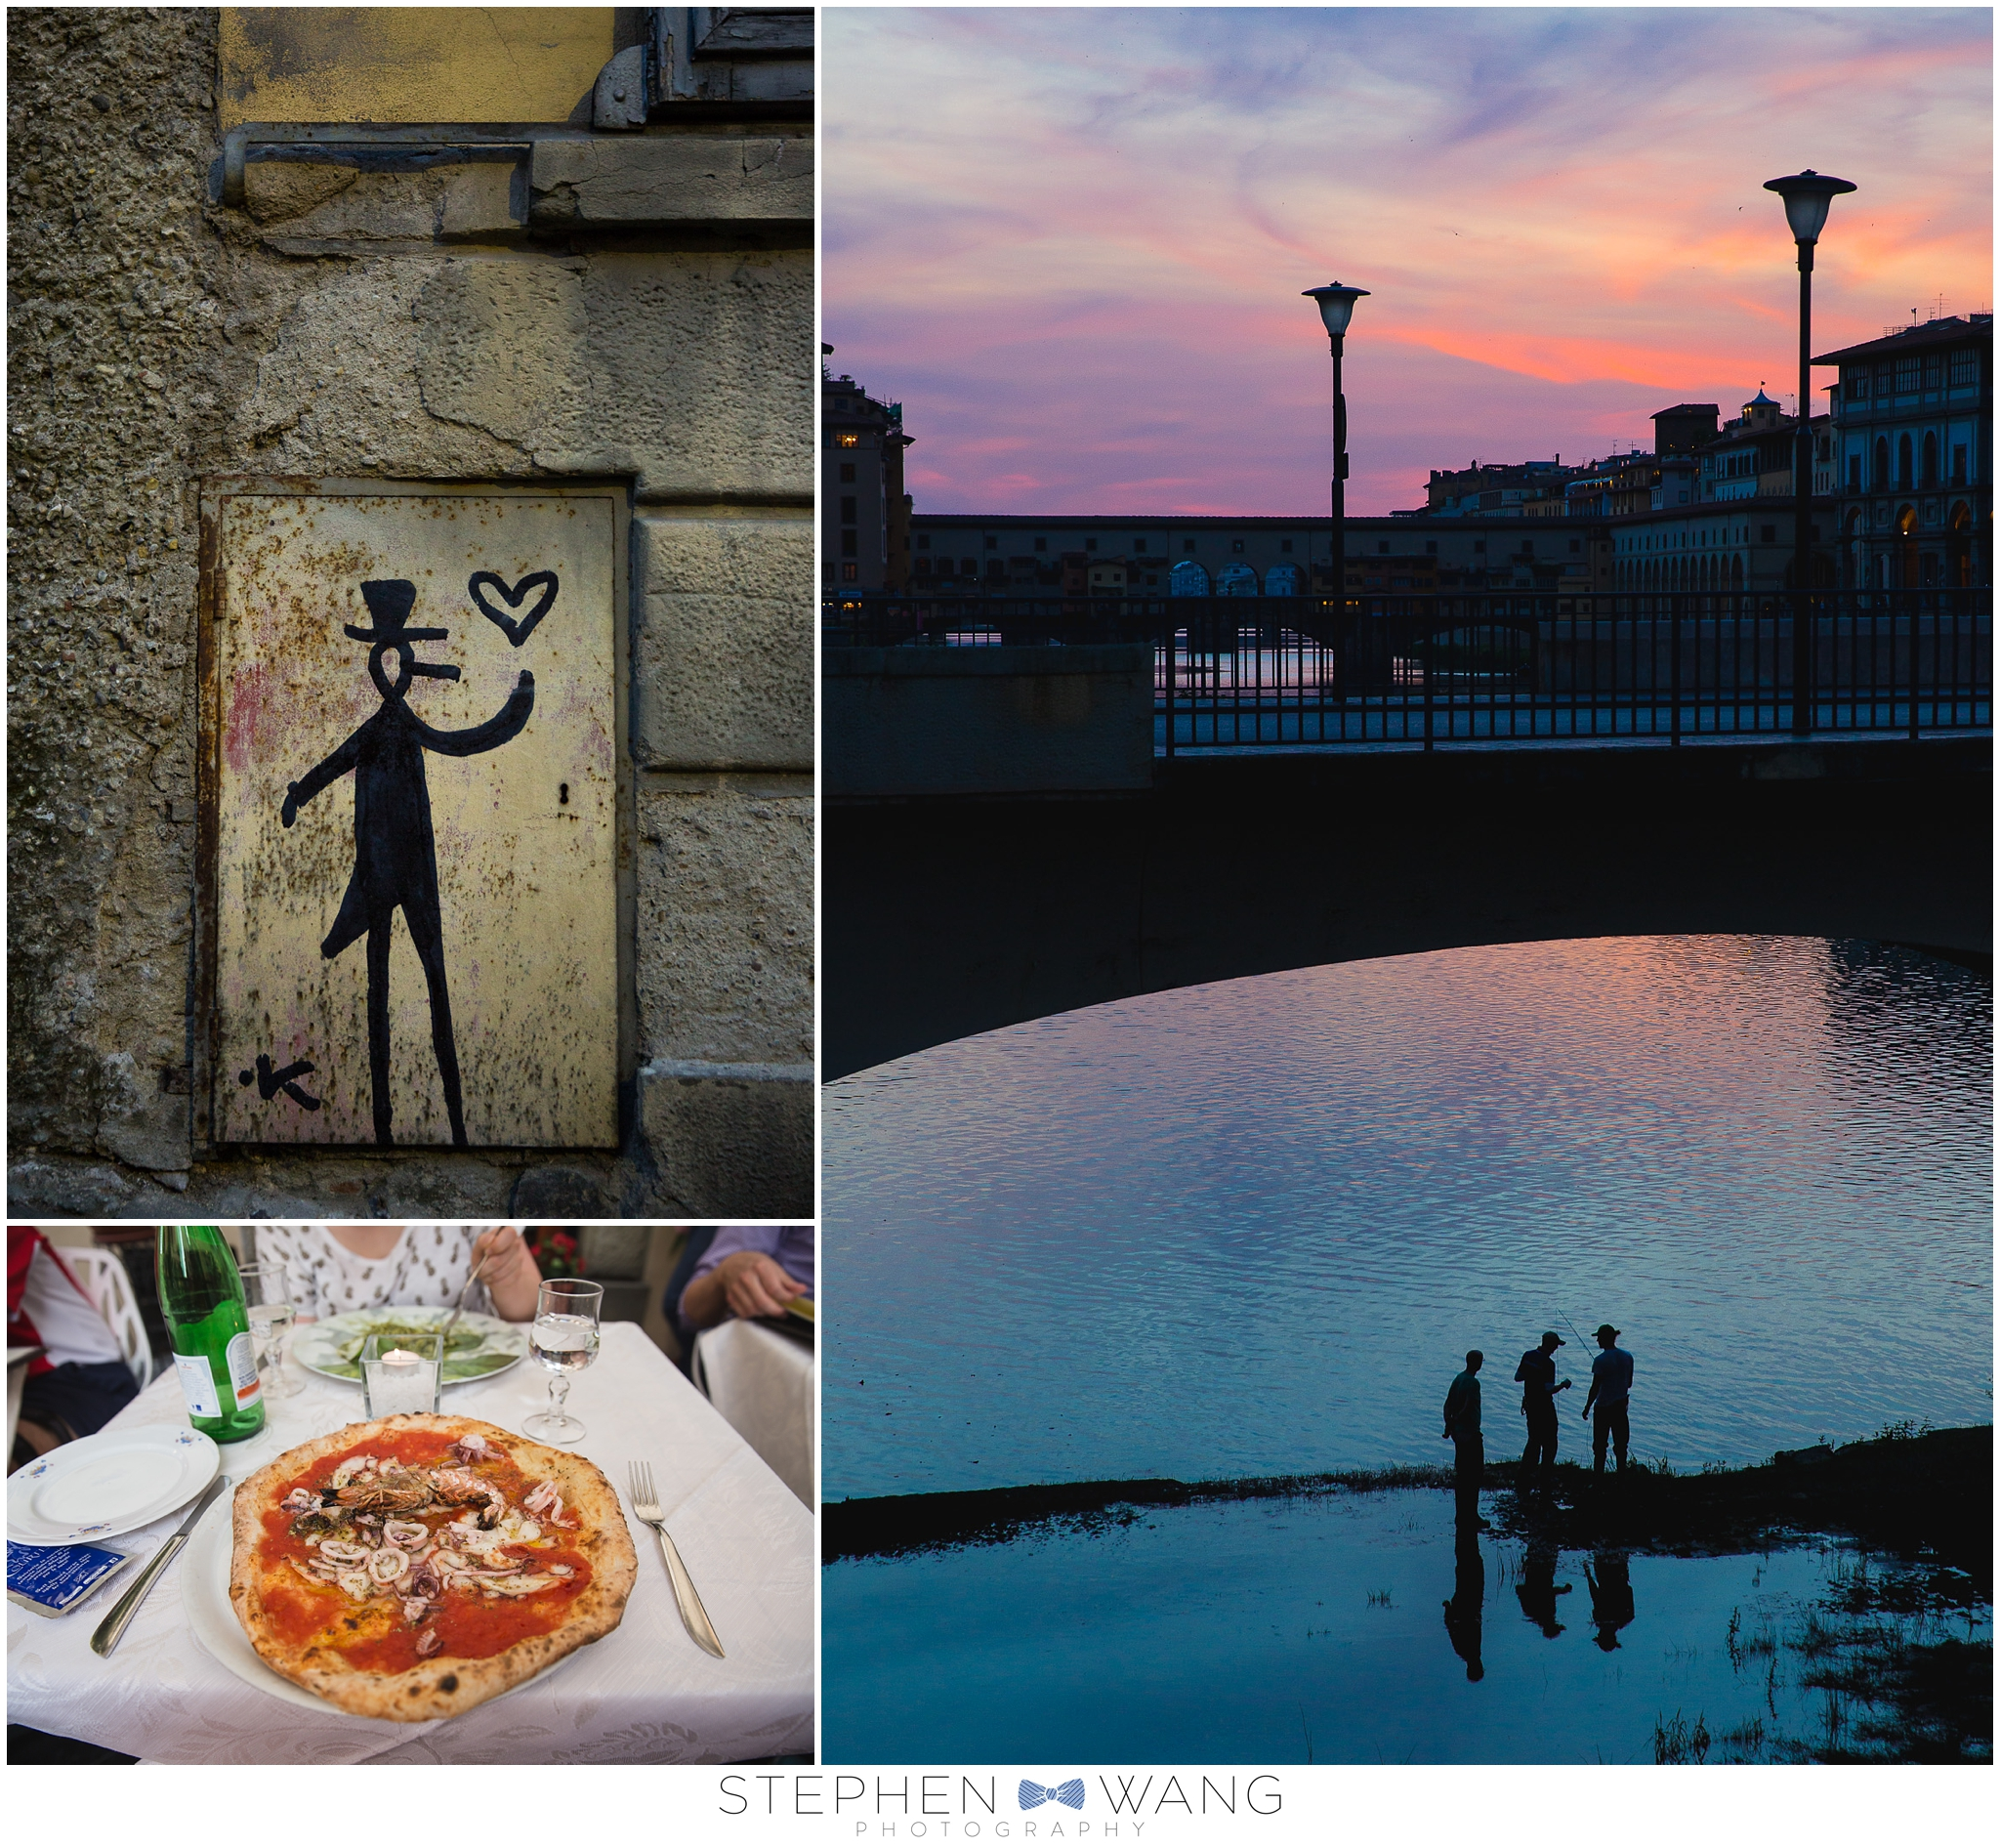 Some penguin graffiti, a delicious pizza pescatore, and fishermen in the Arno at dusk.